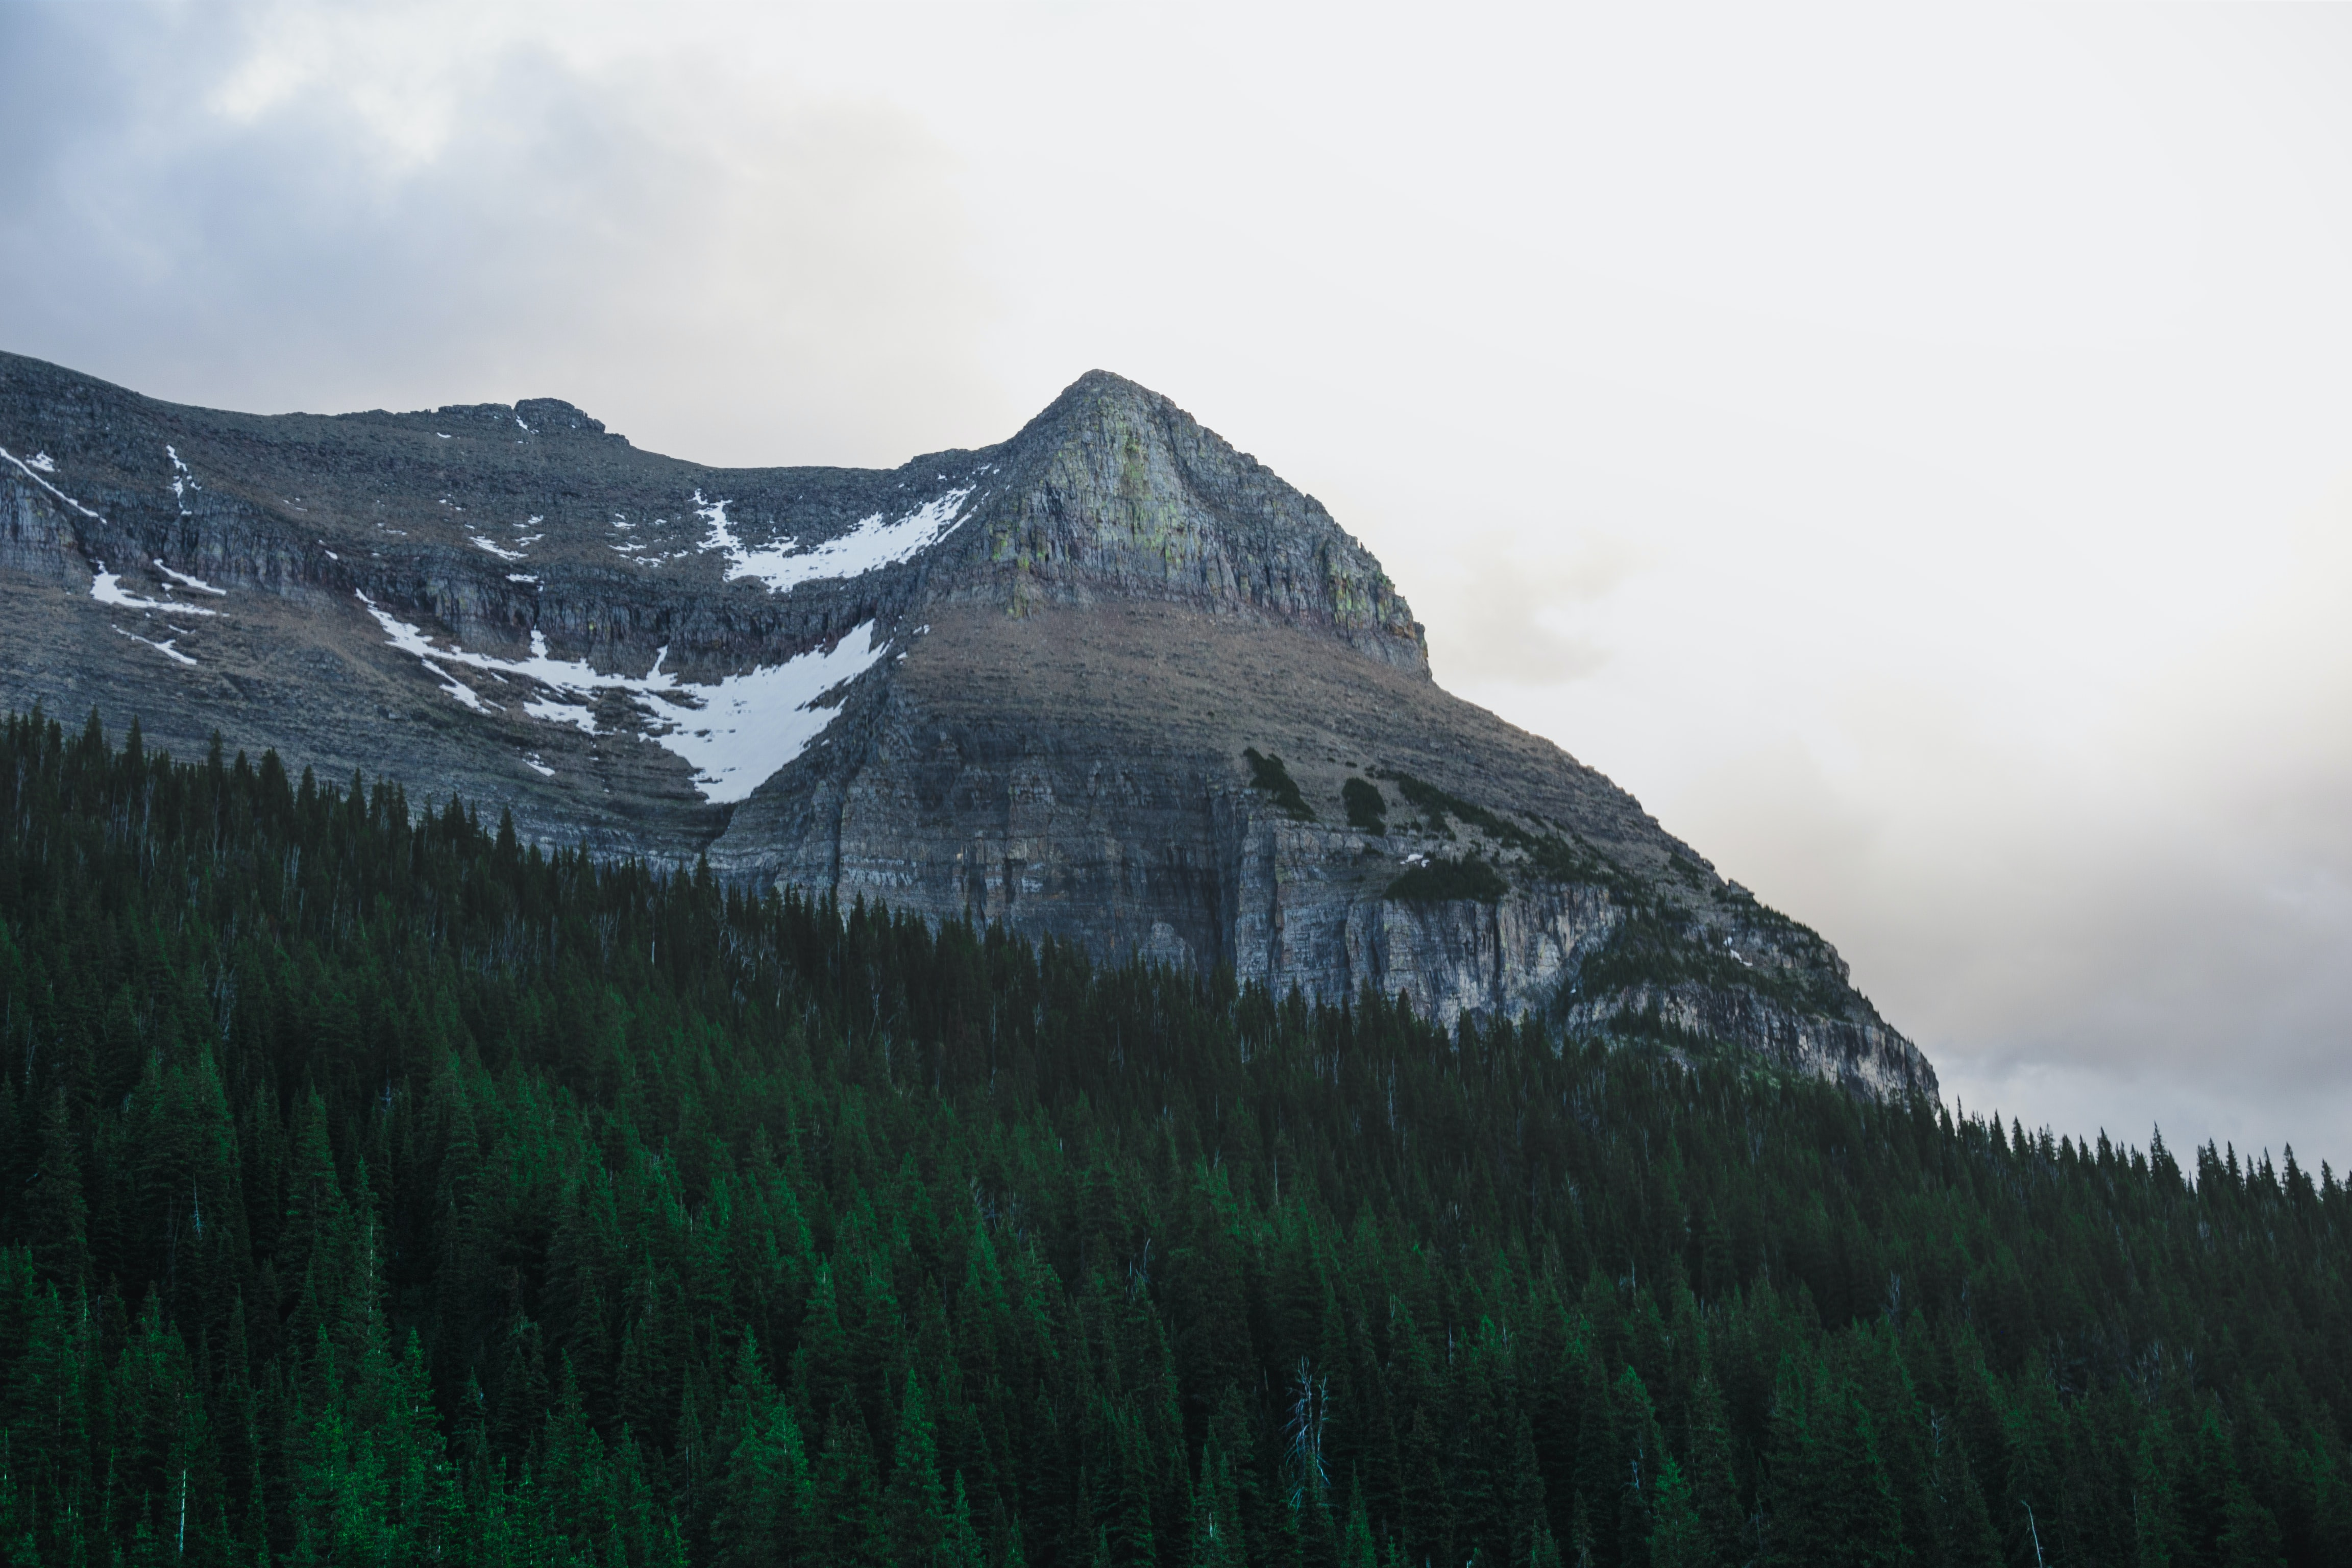 A flat mountain with patches of snow near an evergreen forest in Glacier National Park